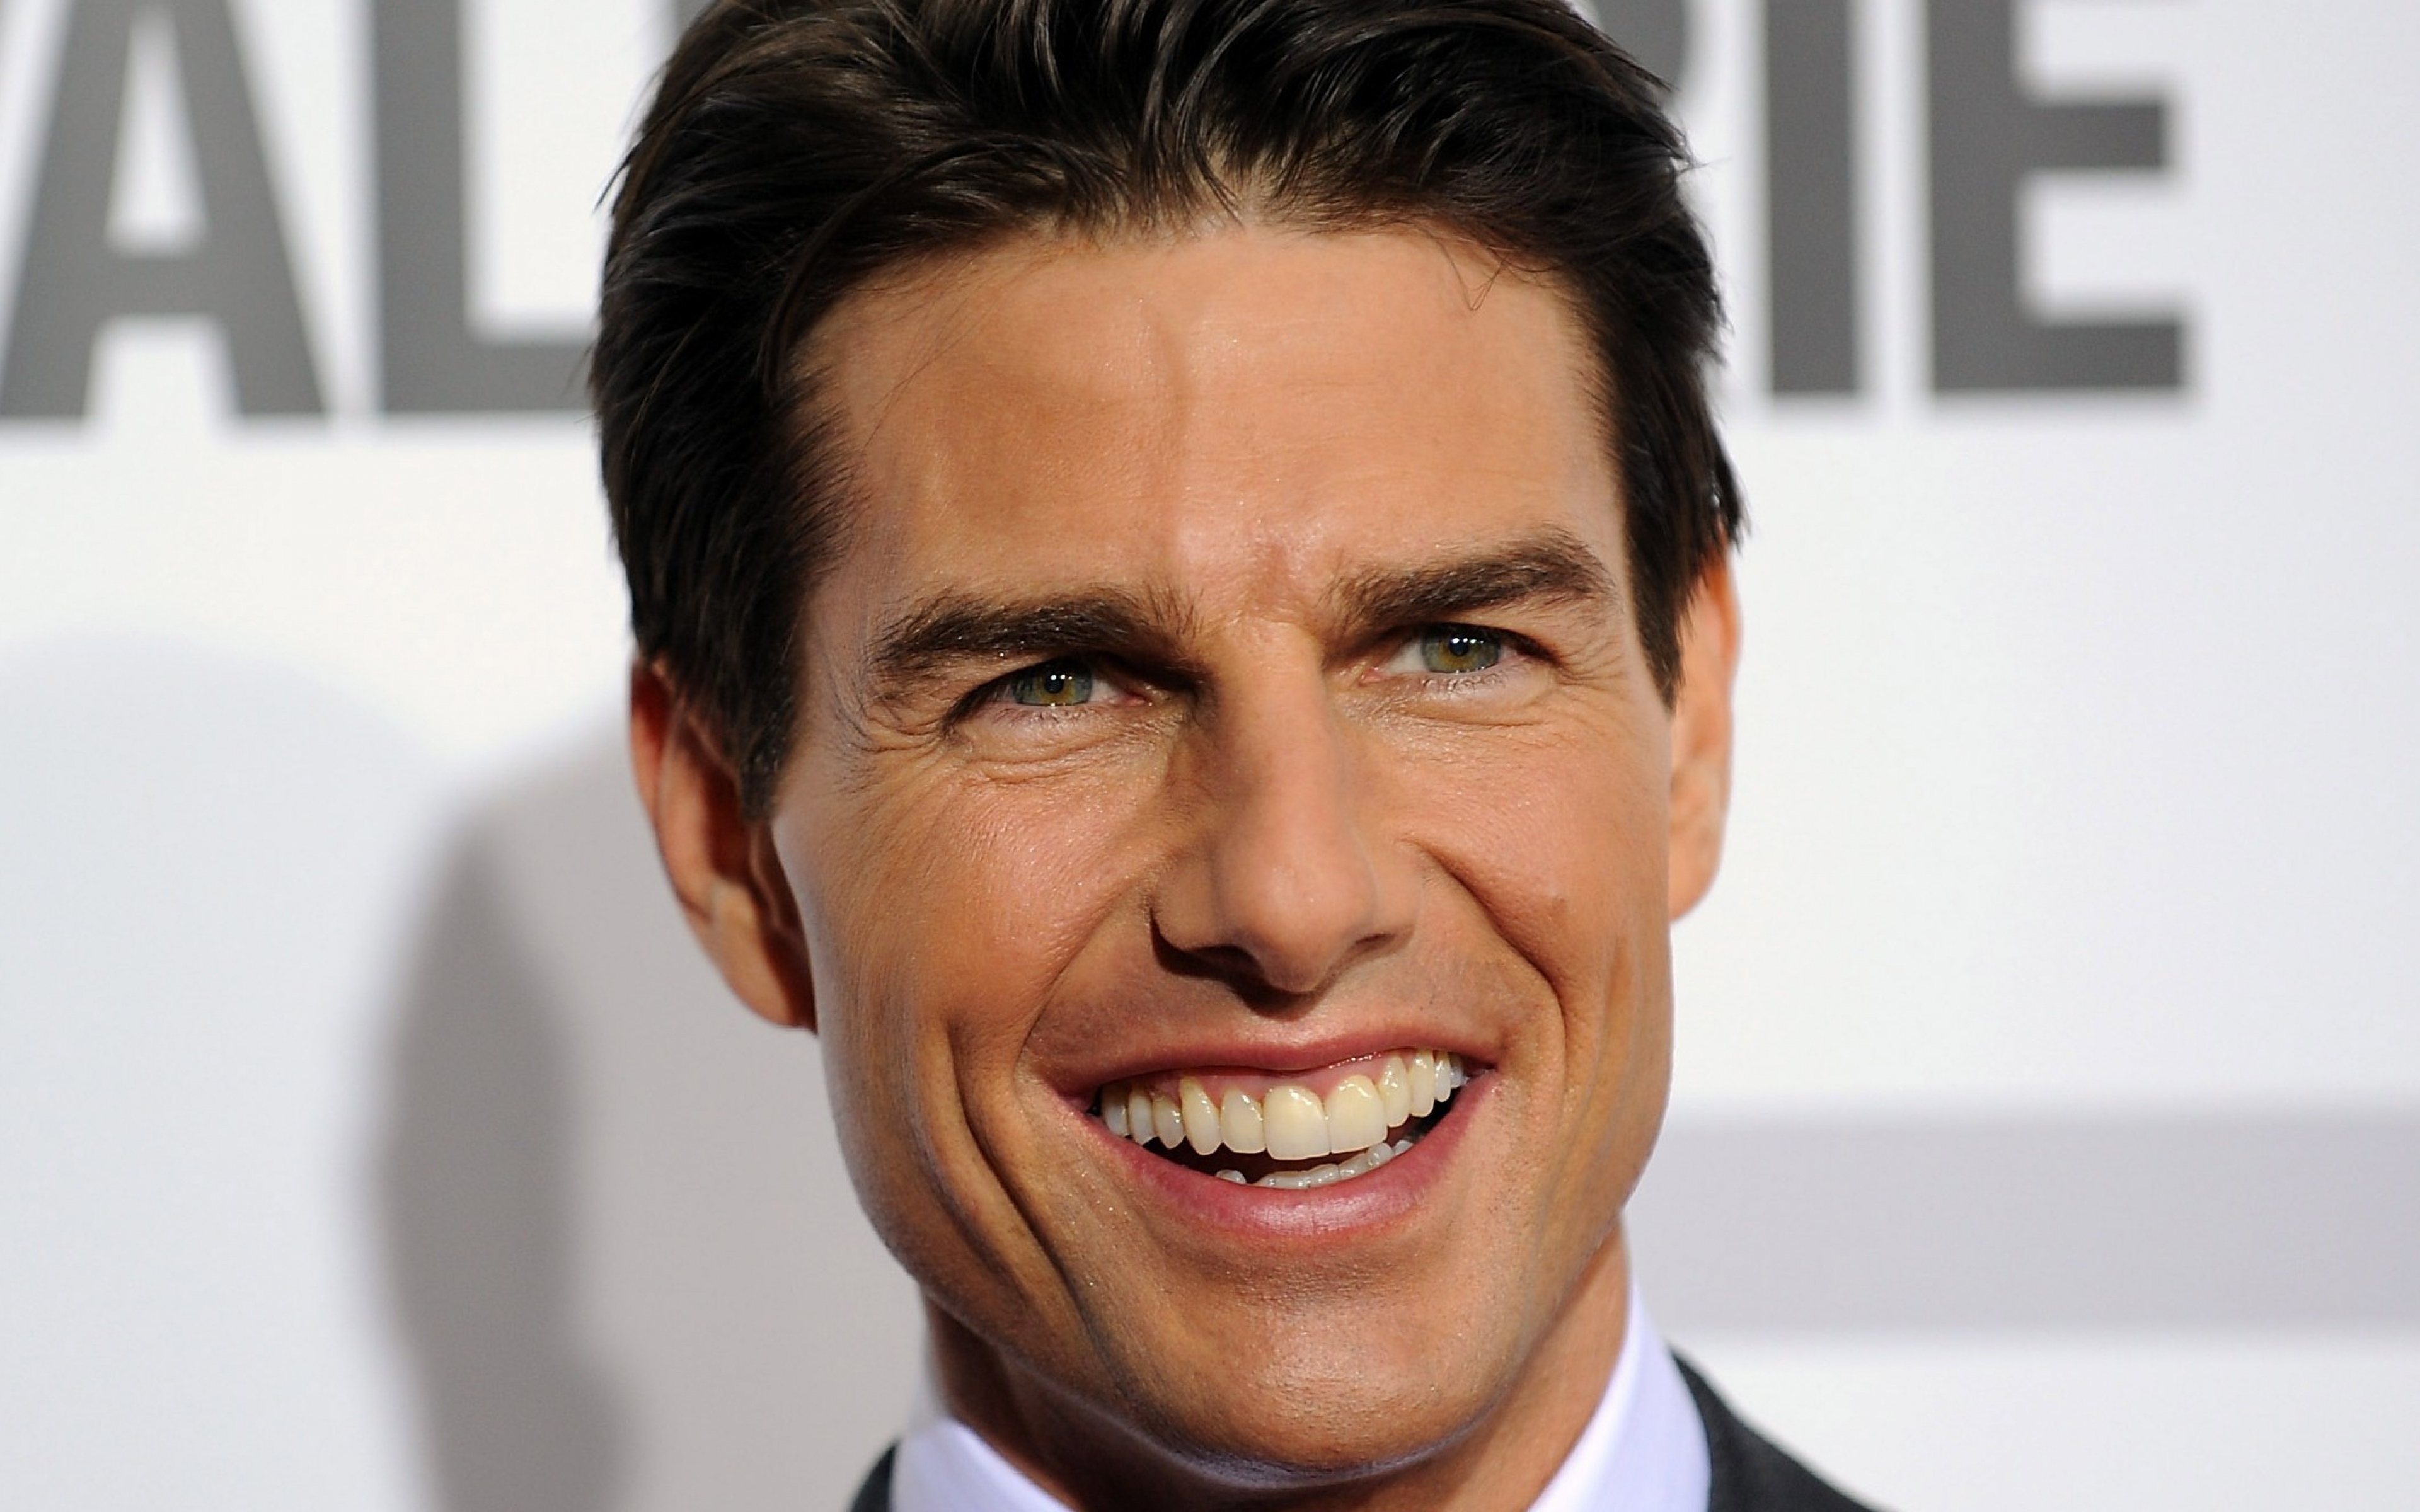 tom cruise wallpapers high quality | download free